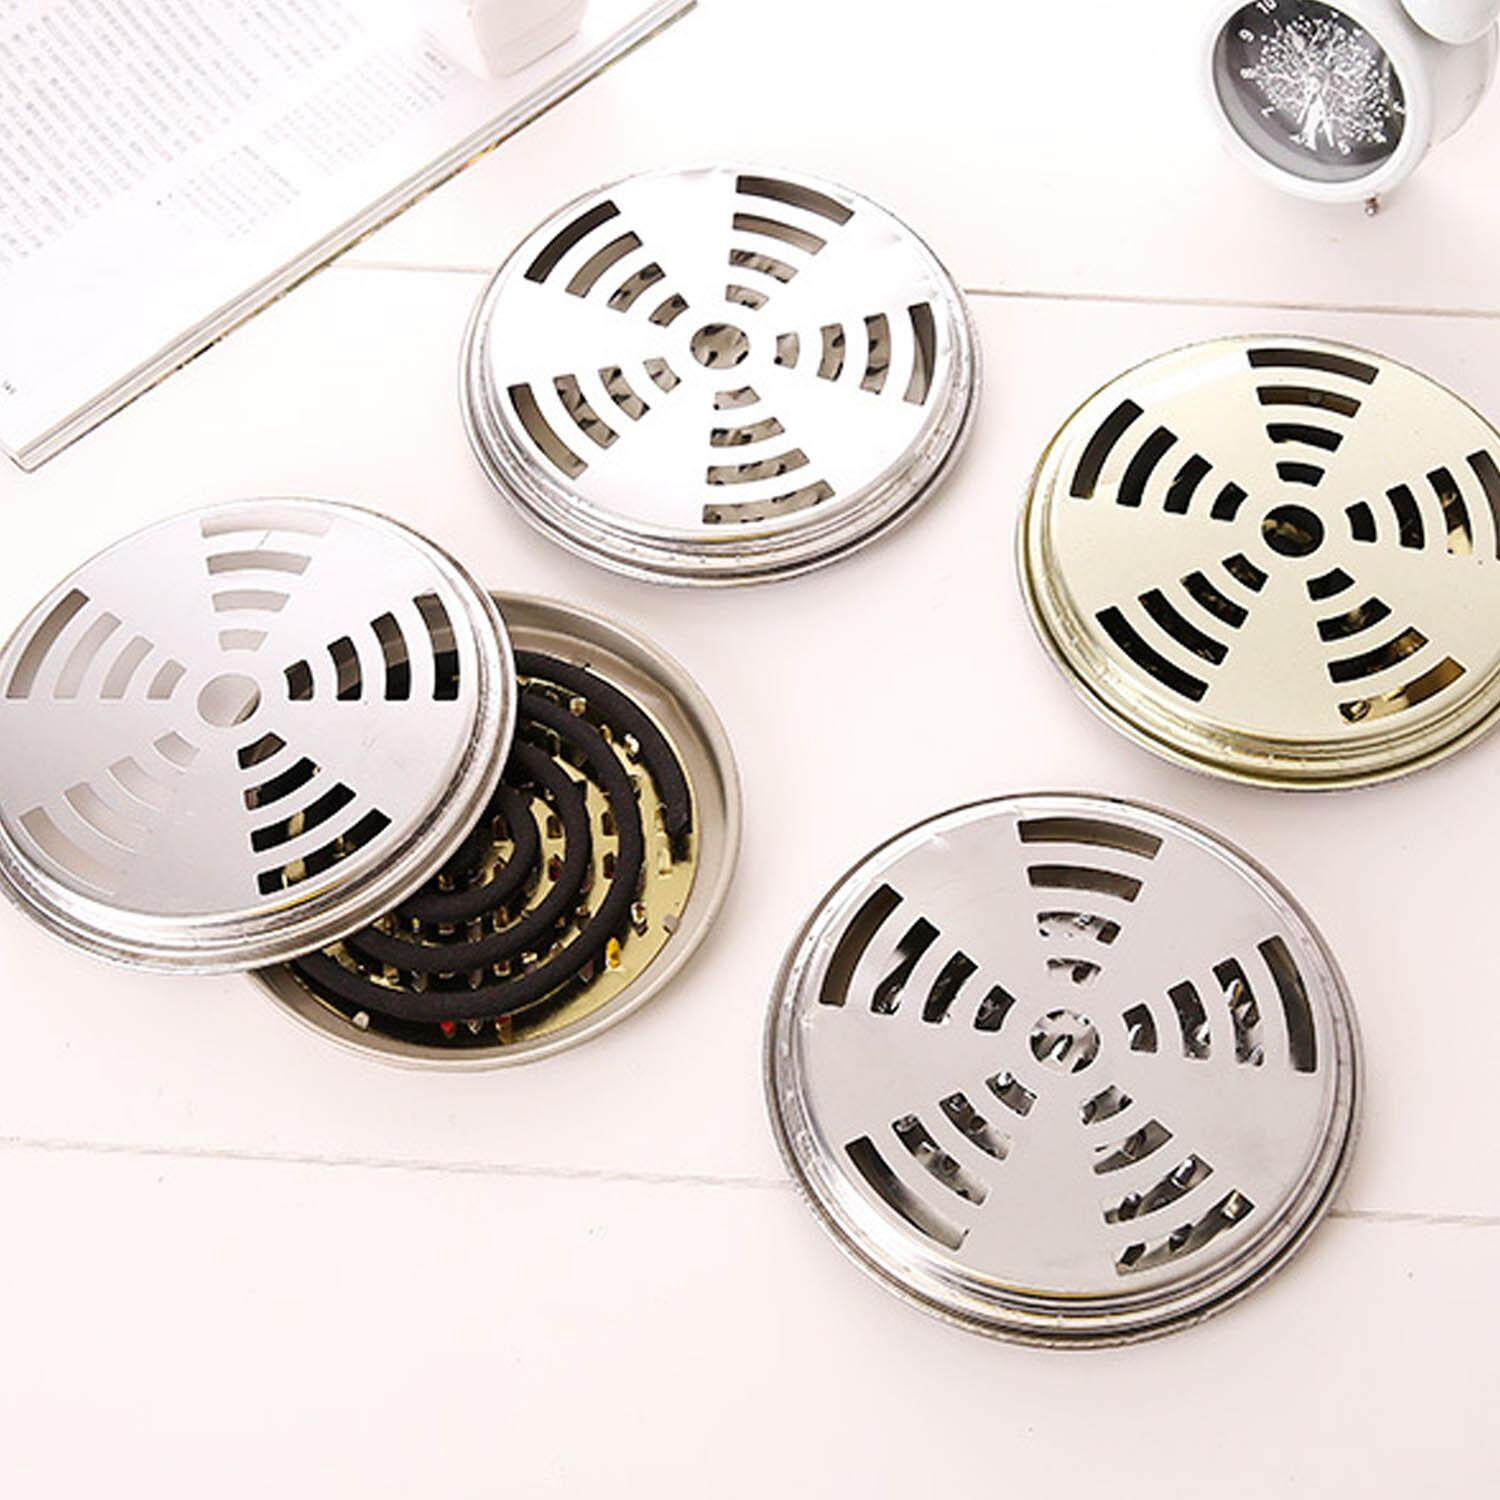 5 Pcs Metal Mosquito Coil Incense Fire Box Tray Holder With Supporting Nail Teeth And Hollow Lid - Intl By Stoneky.